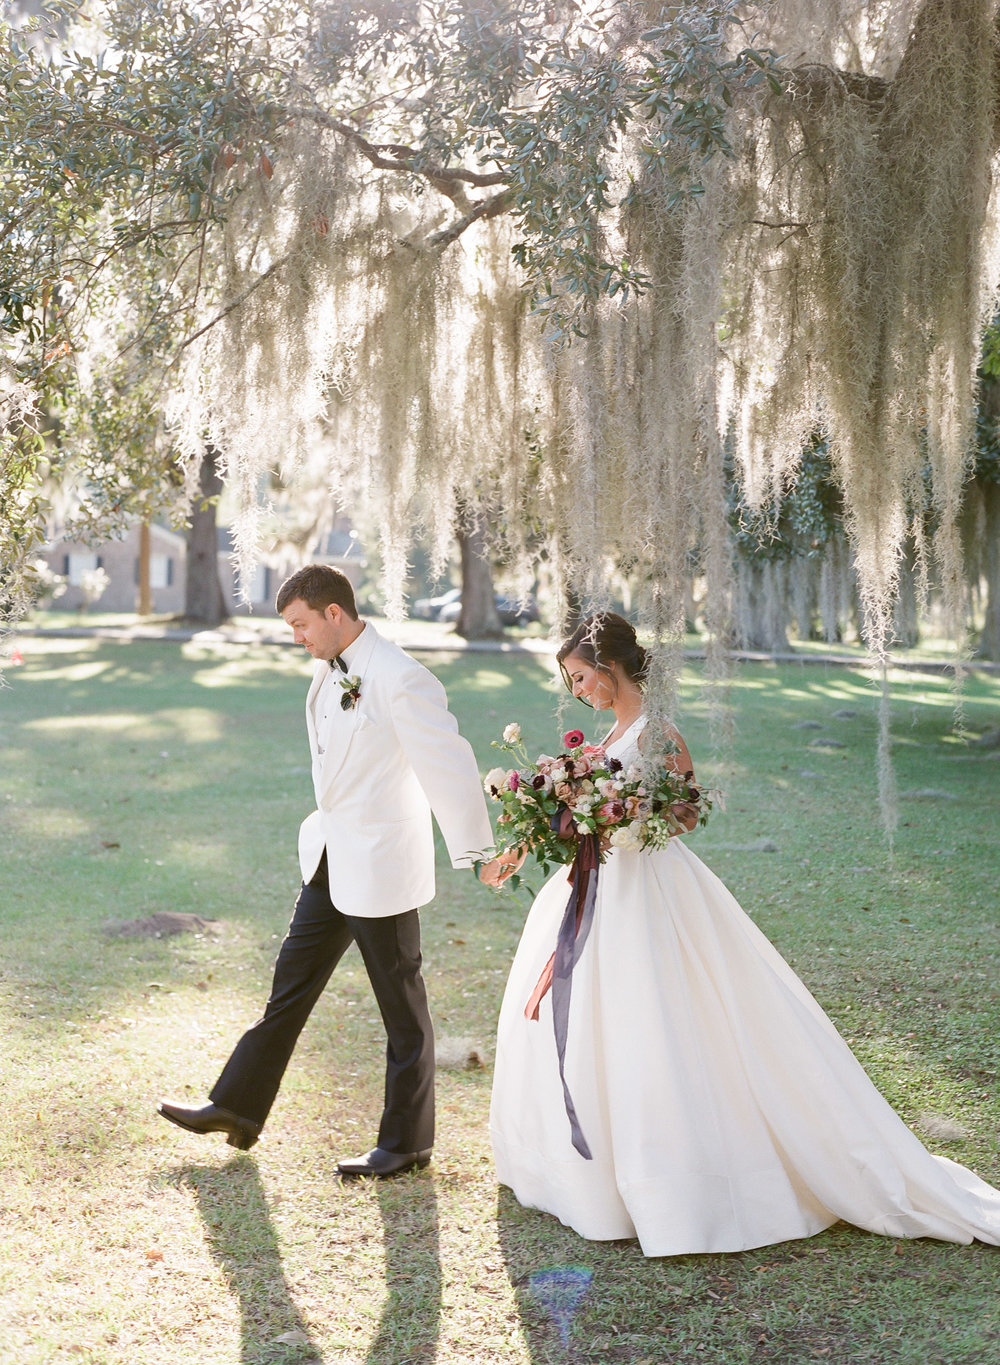 Charleston-Wedding-Photographer-51.jpg